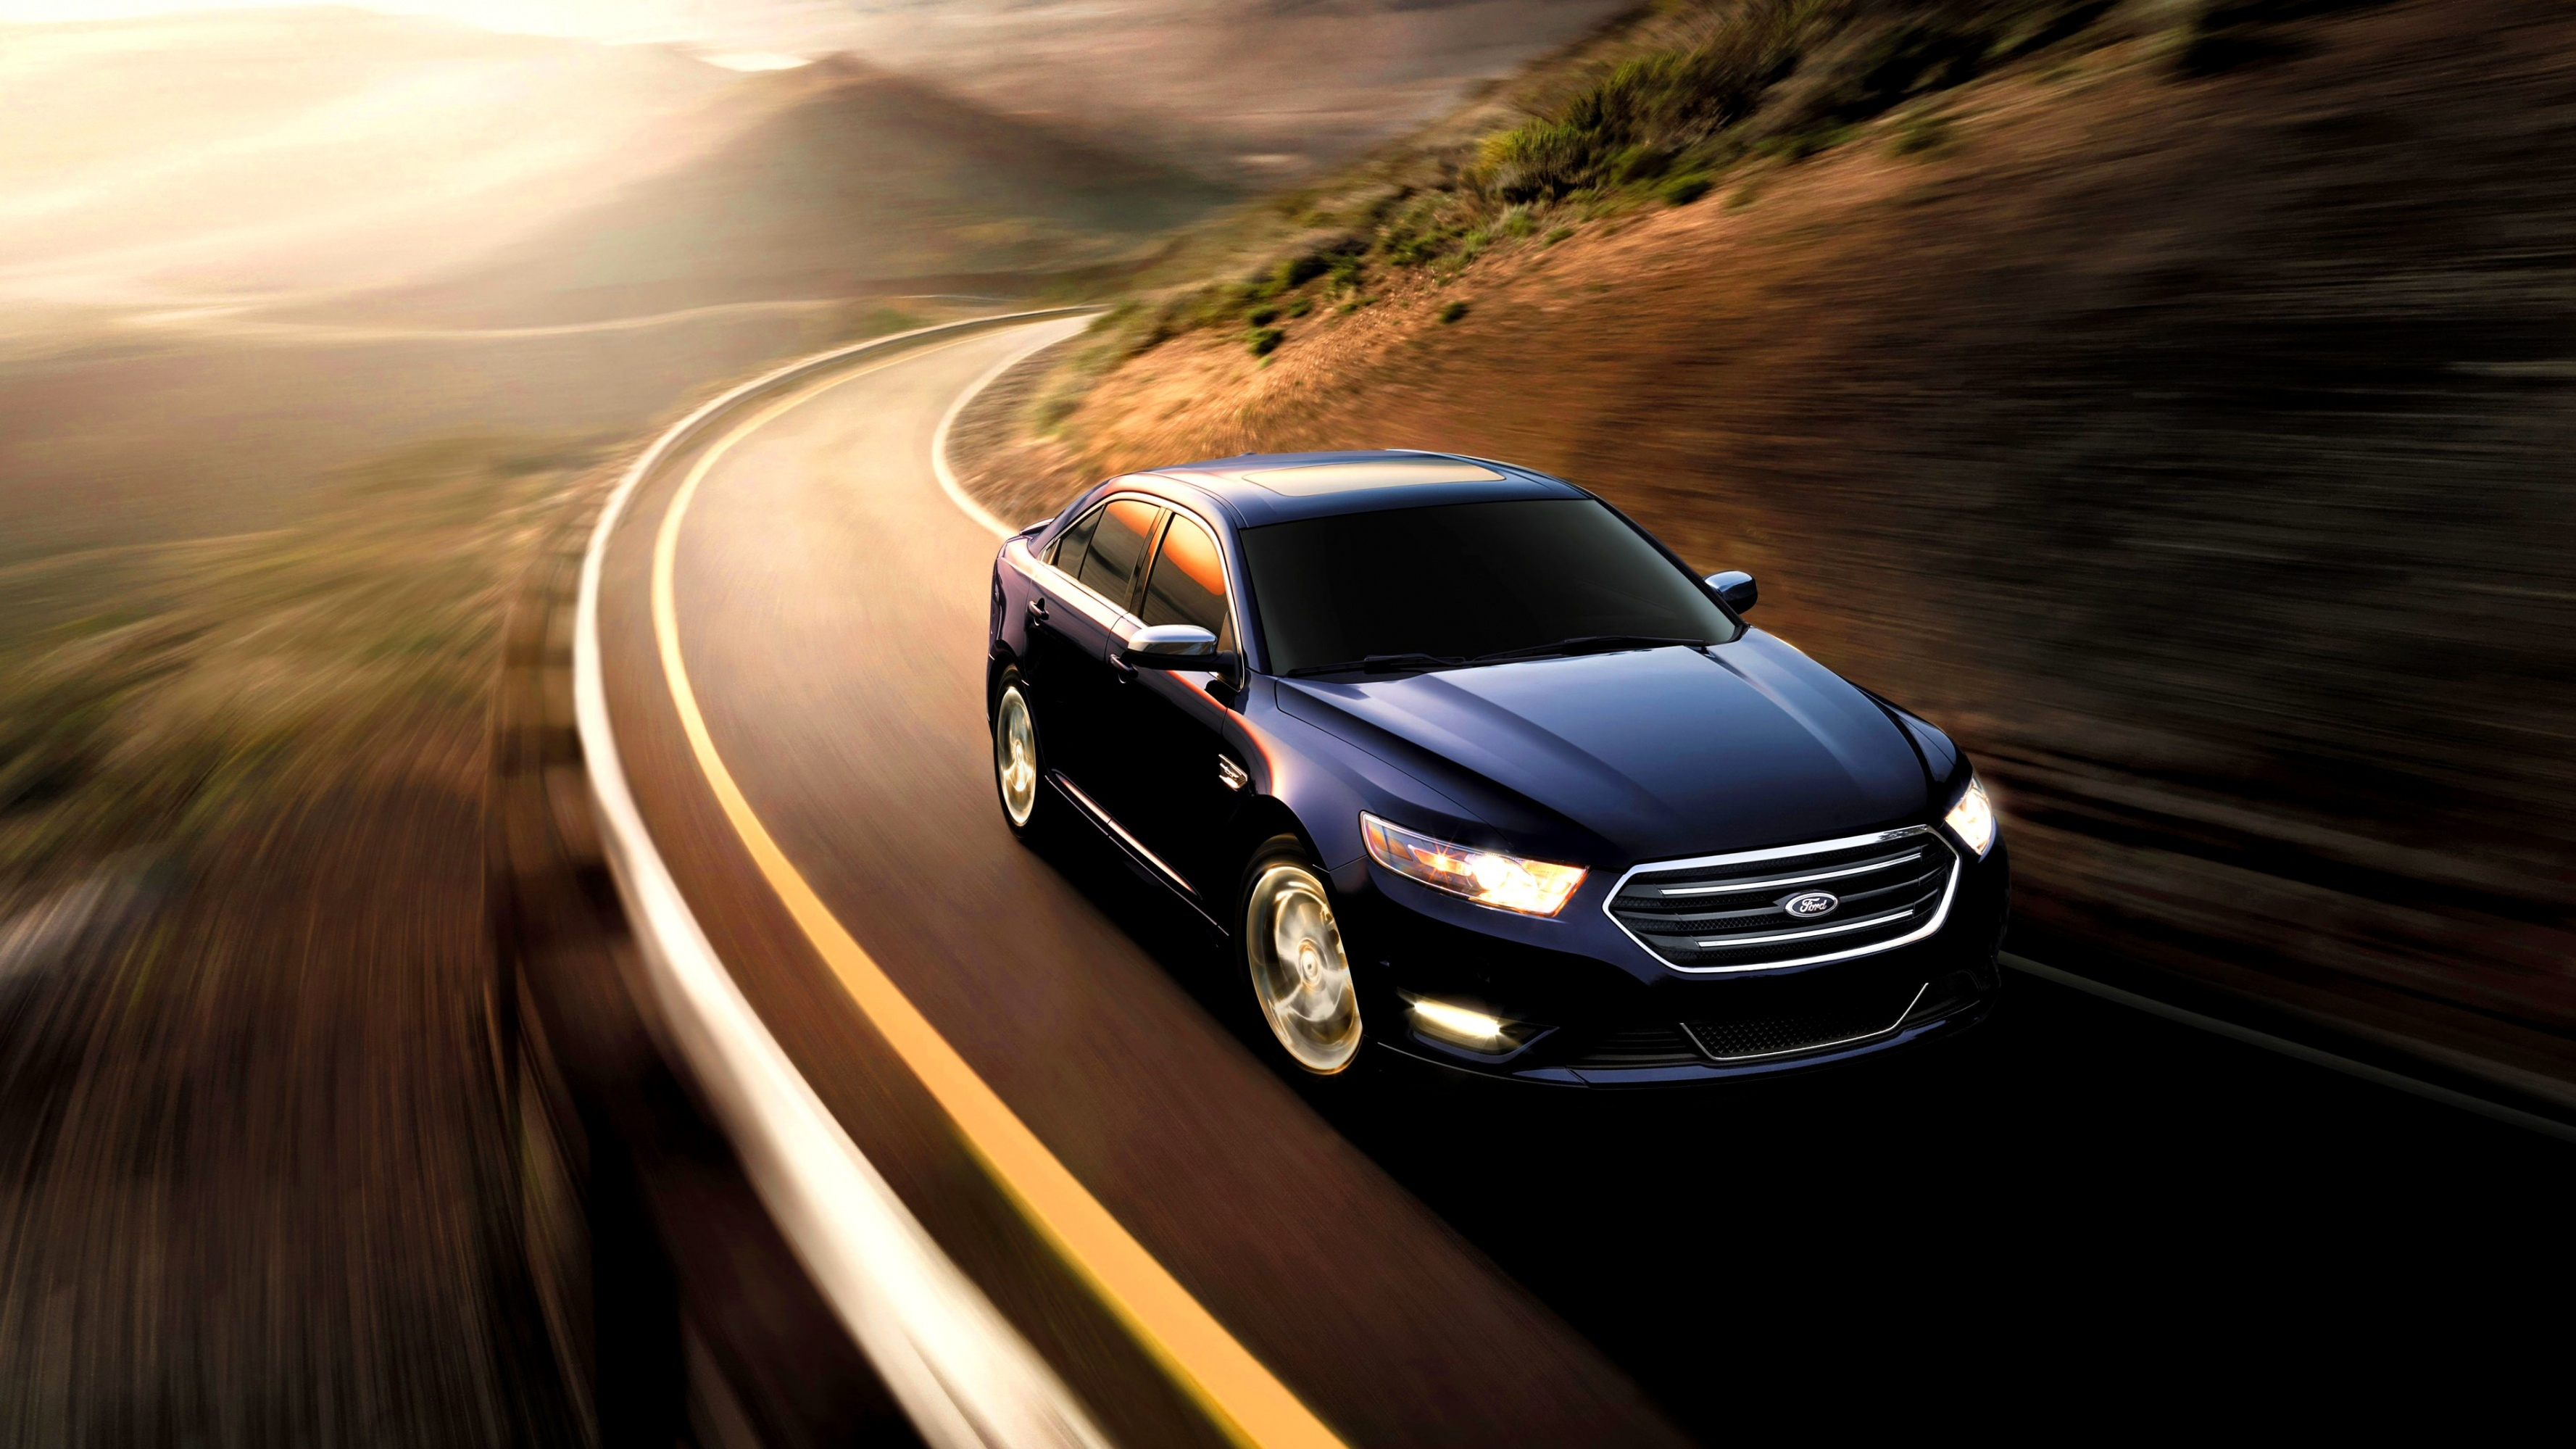 package performance bigger dynamics sho taurus yet design inspired gets news sportiest brakes and ford enhanced